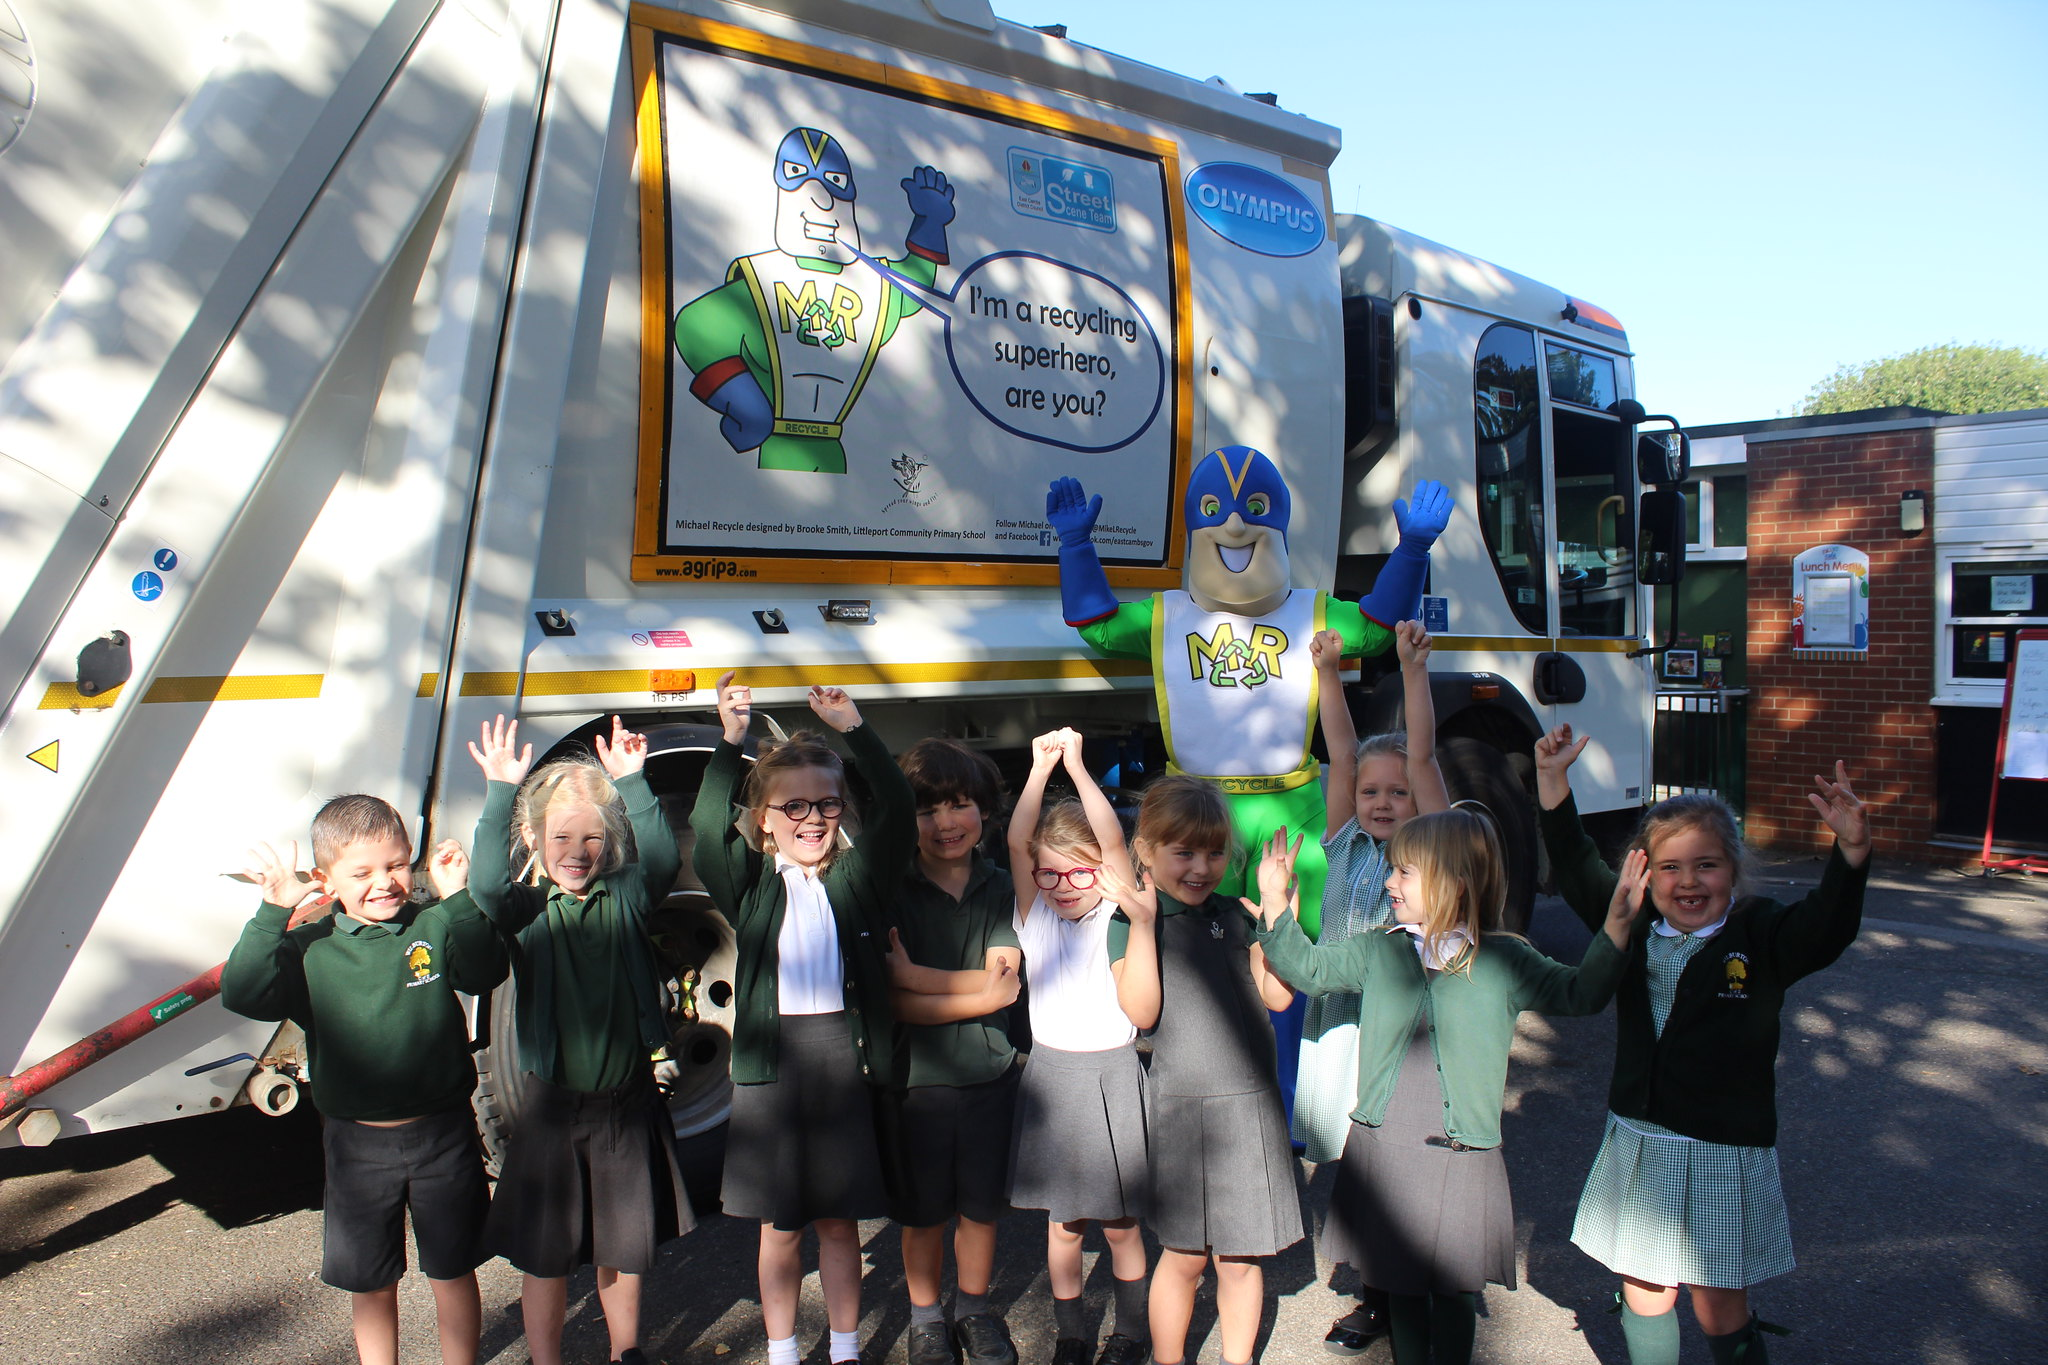 Michael Spreads The Recycling Message Around Schools